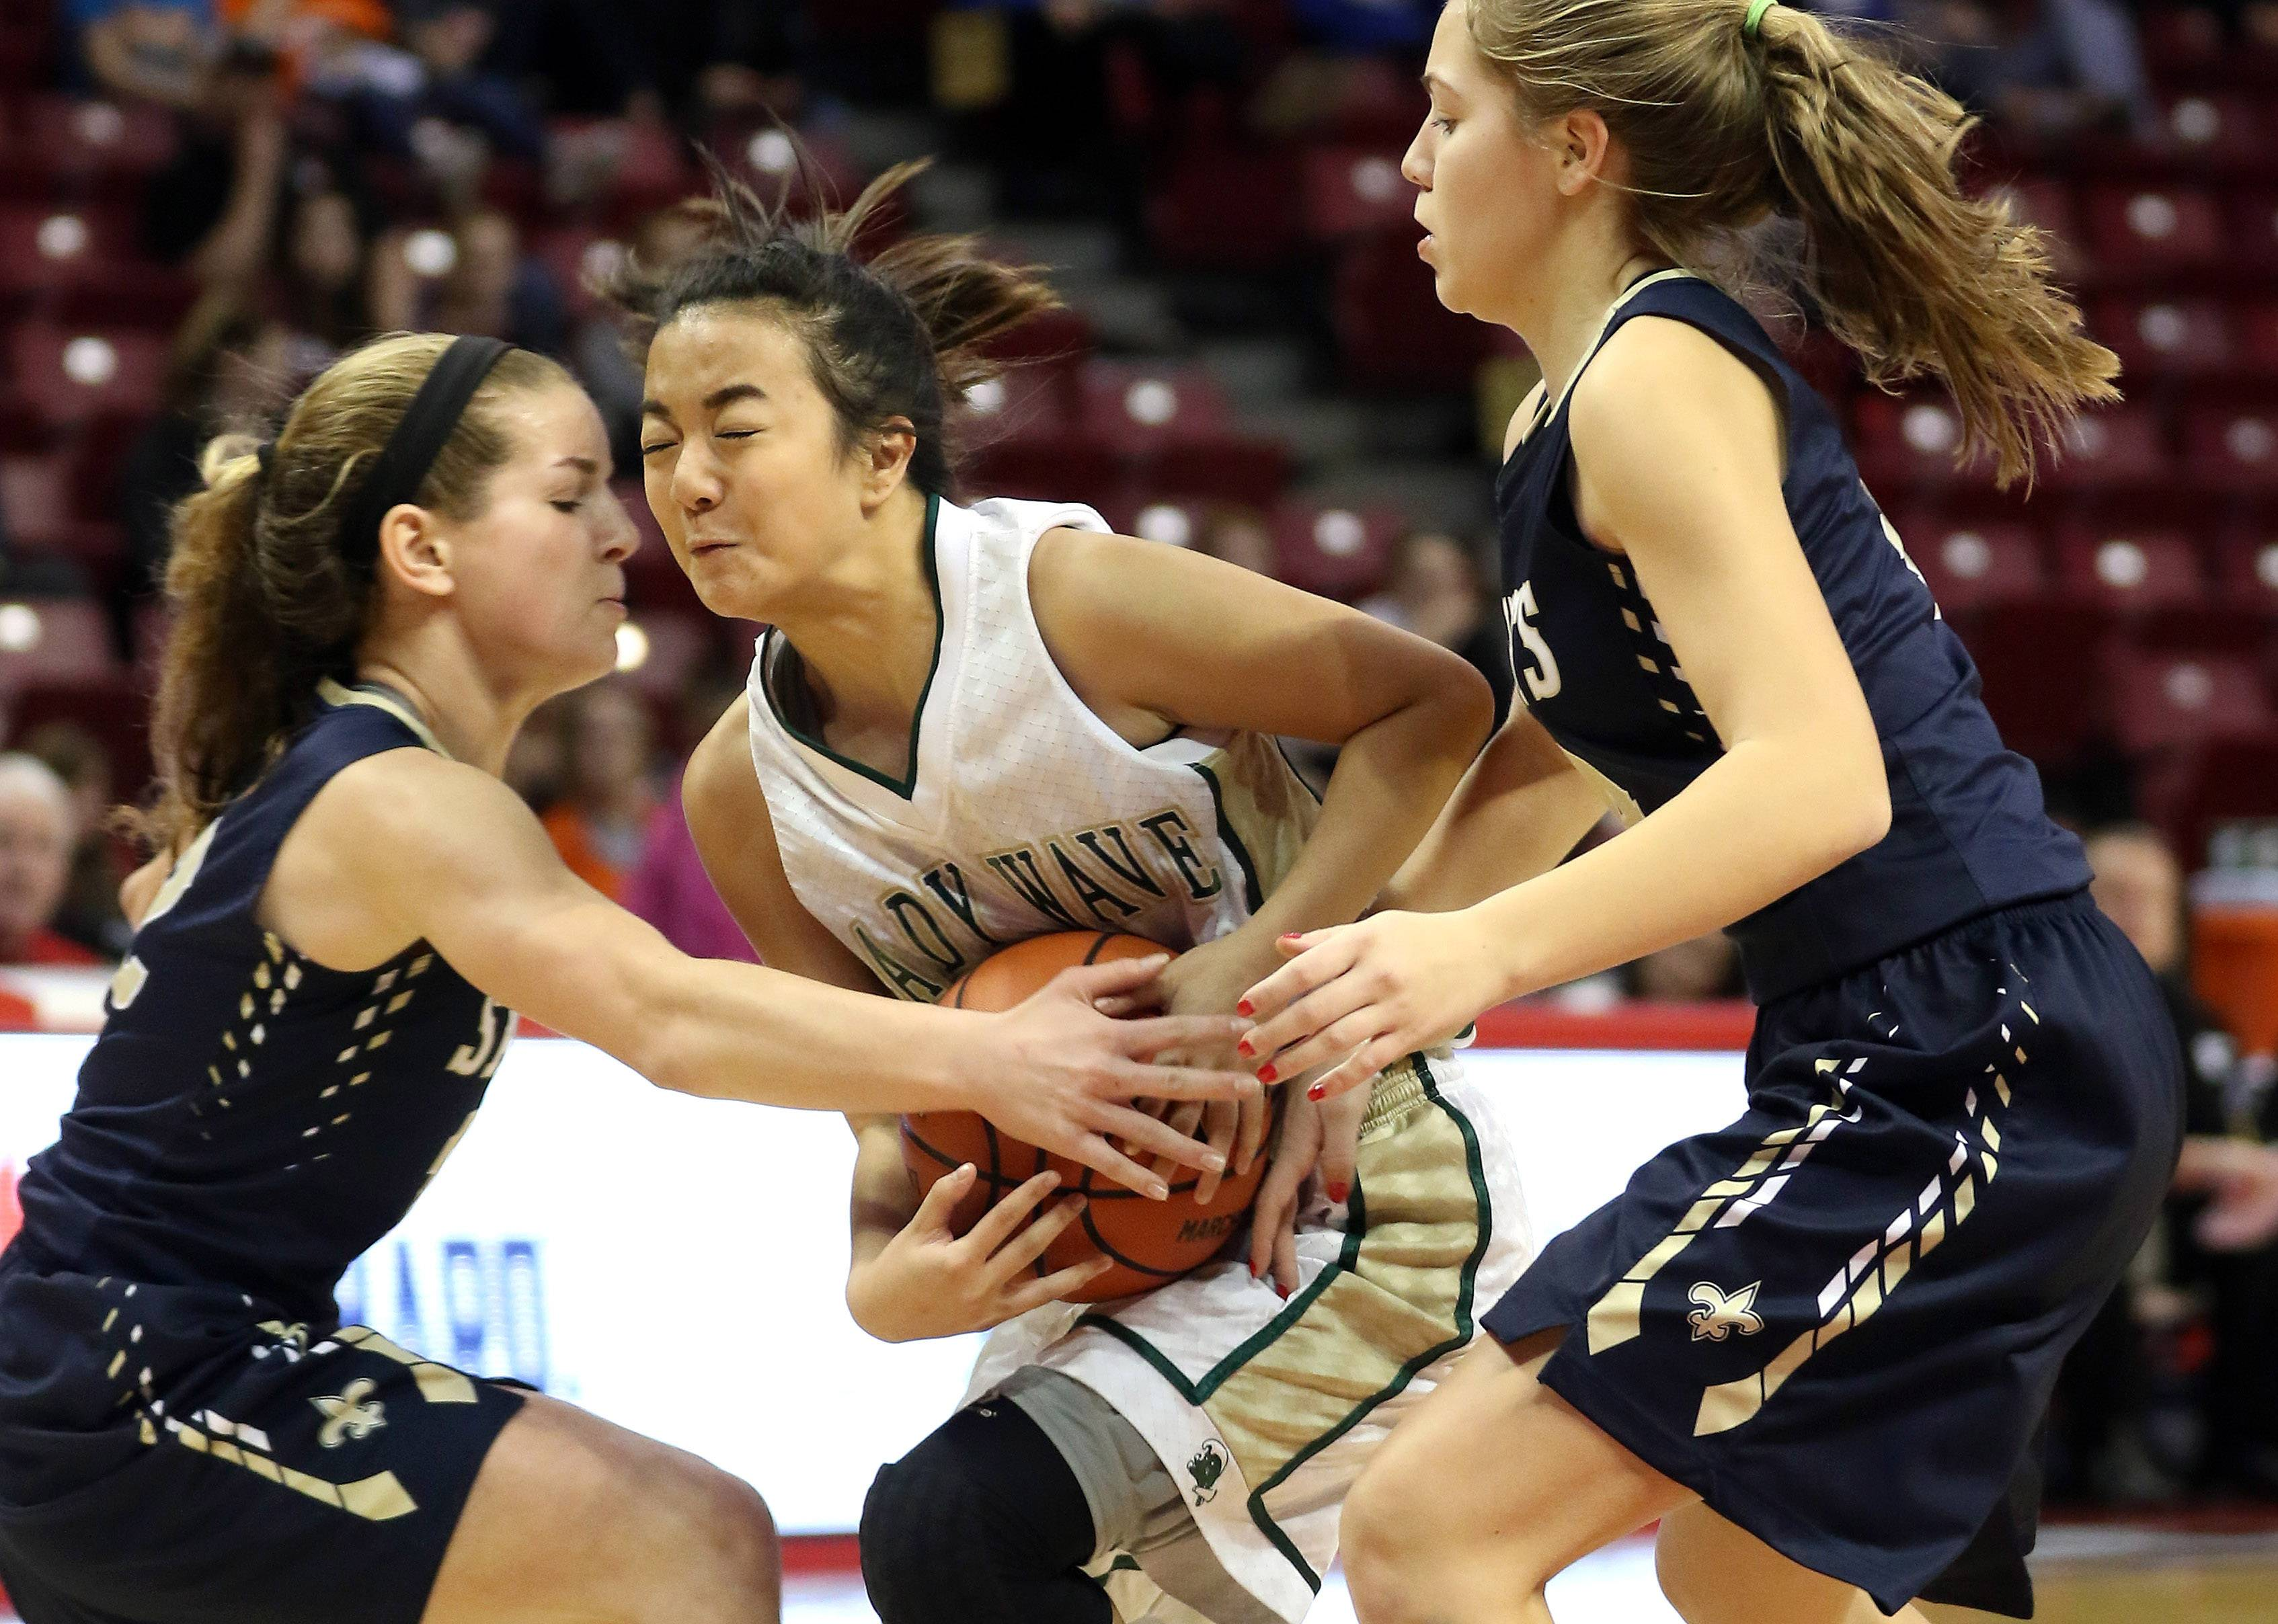 Images: St. Edward falls to Bloomington Central Catholic, 45-42 in girls basketball state semis